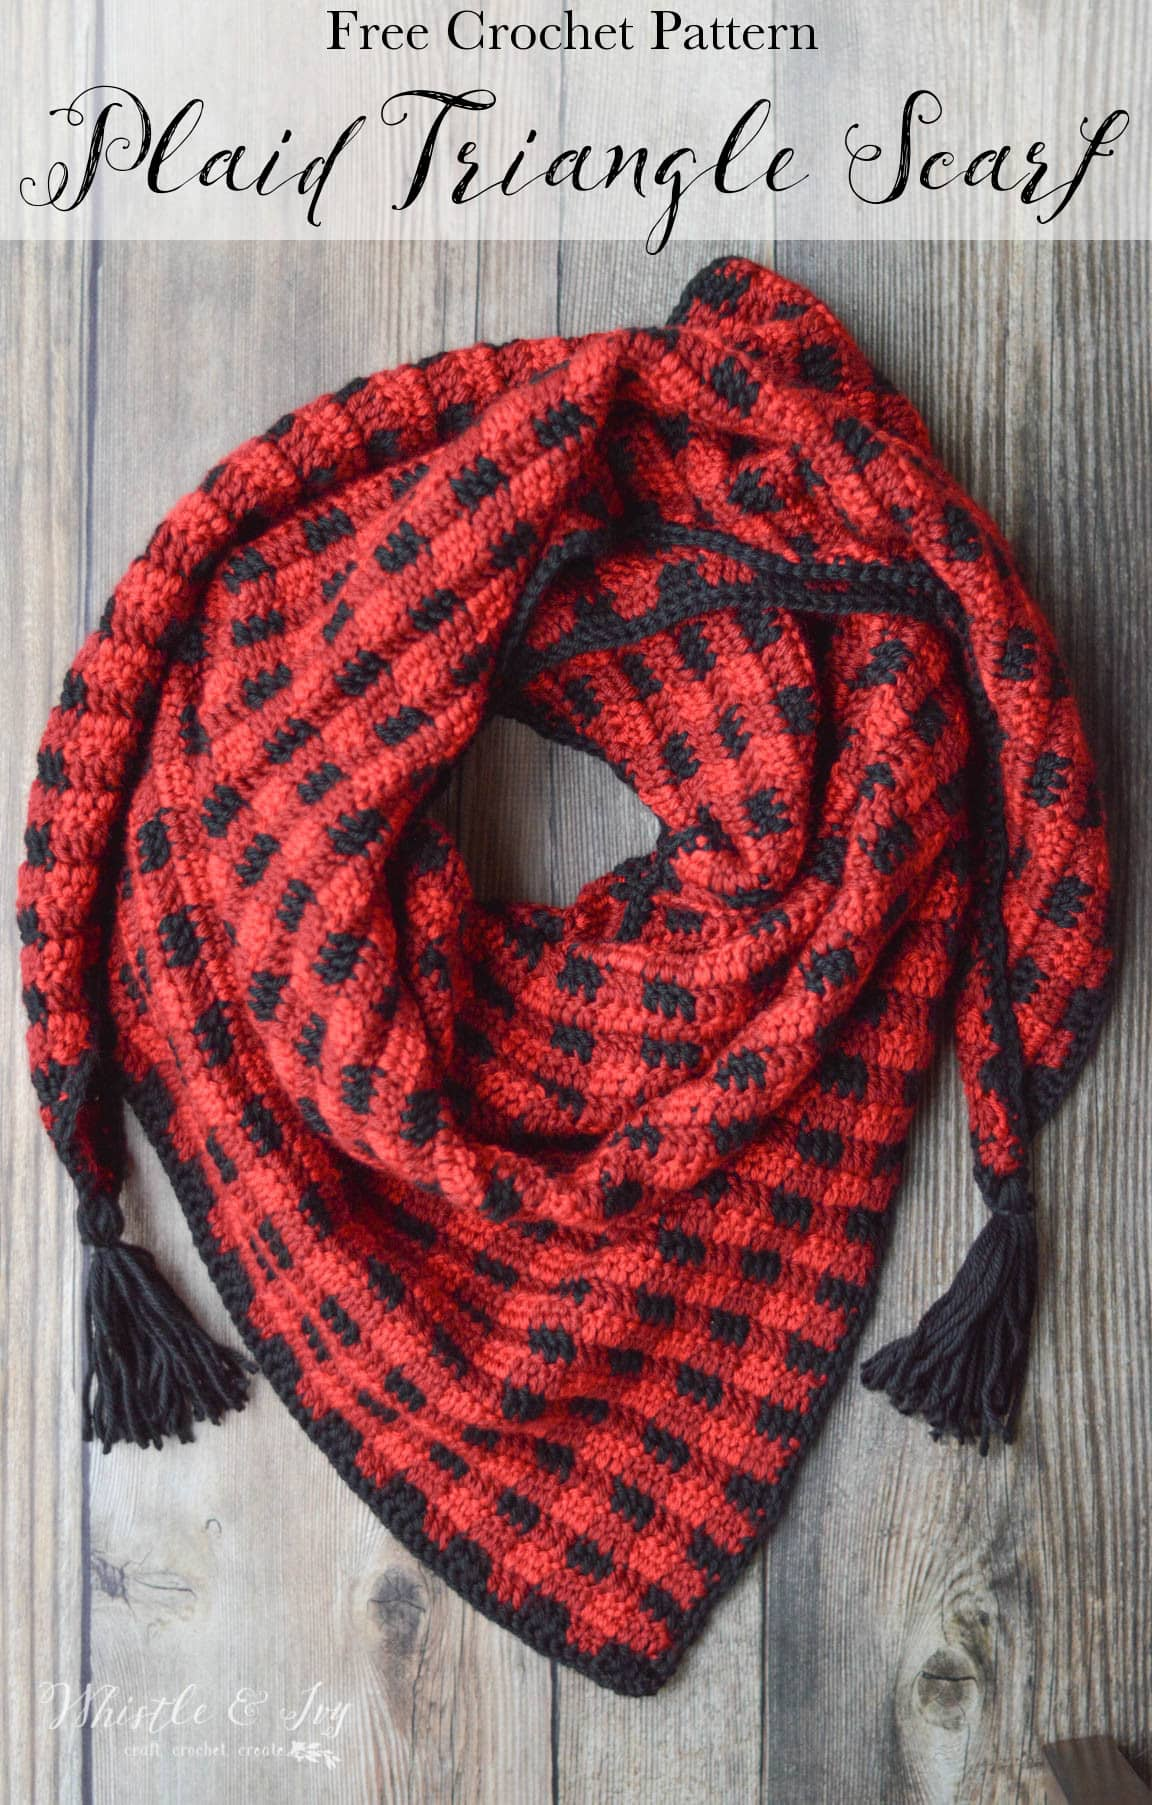 Crochet Plaid Triangle Scarf - Free Crochet Pattern - Whistle and Ivy